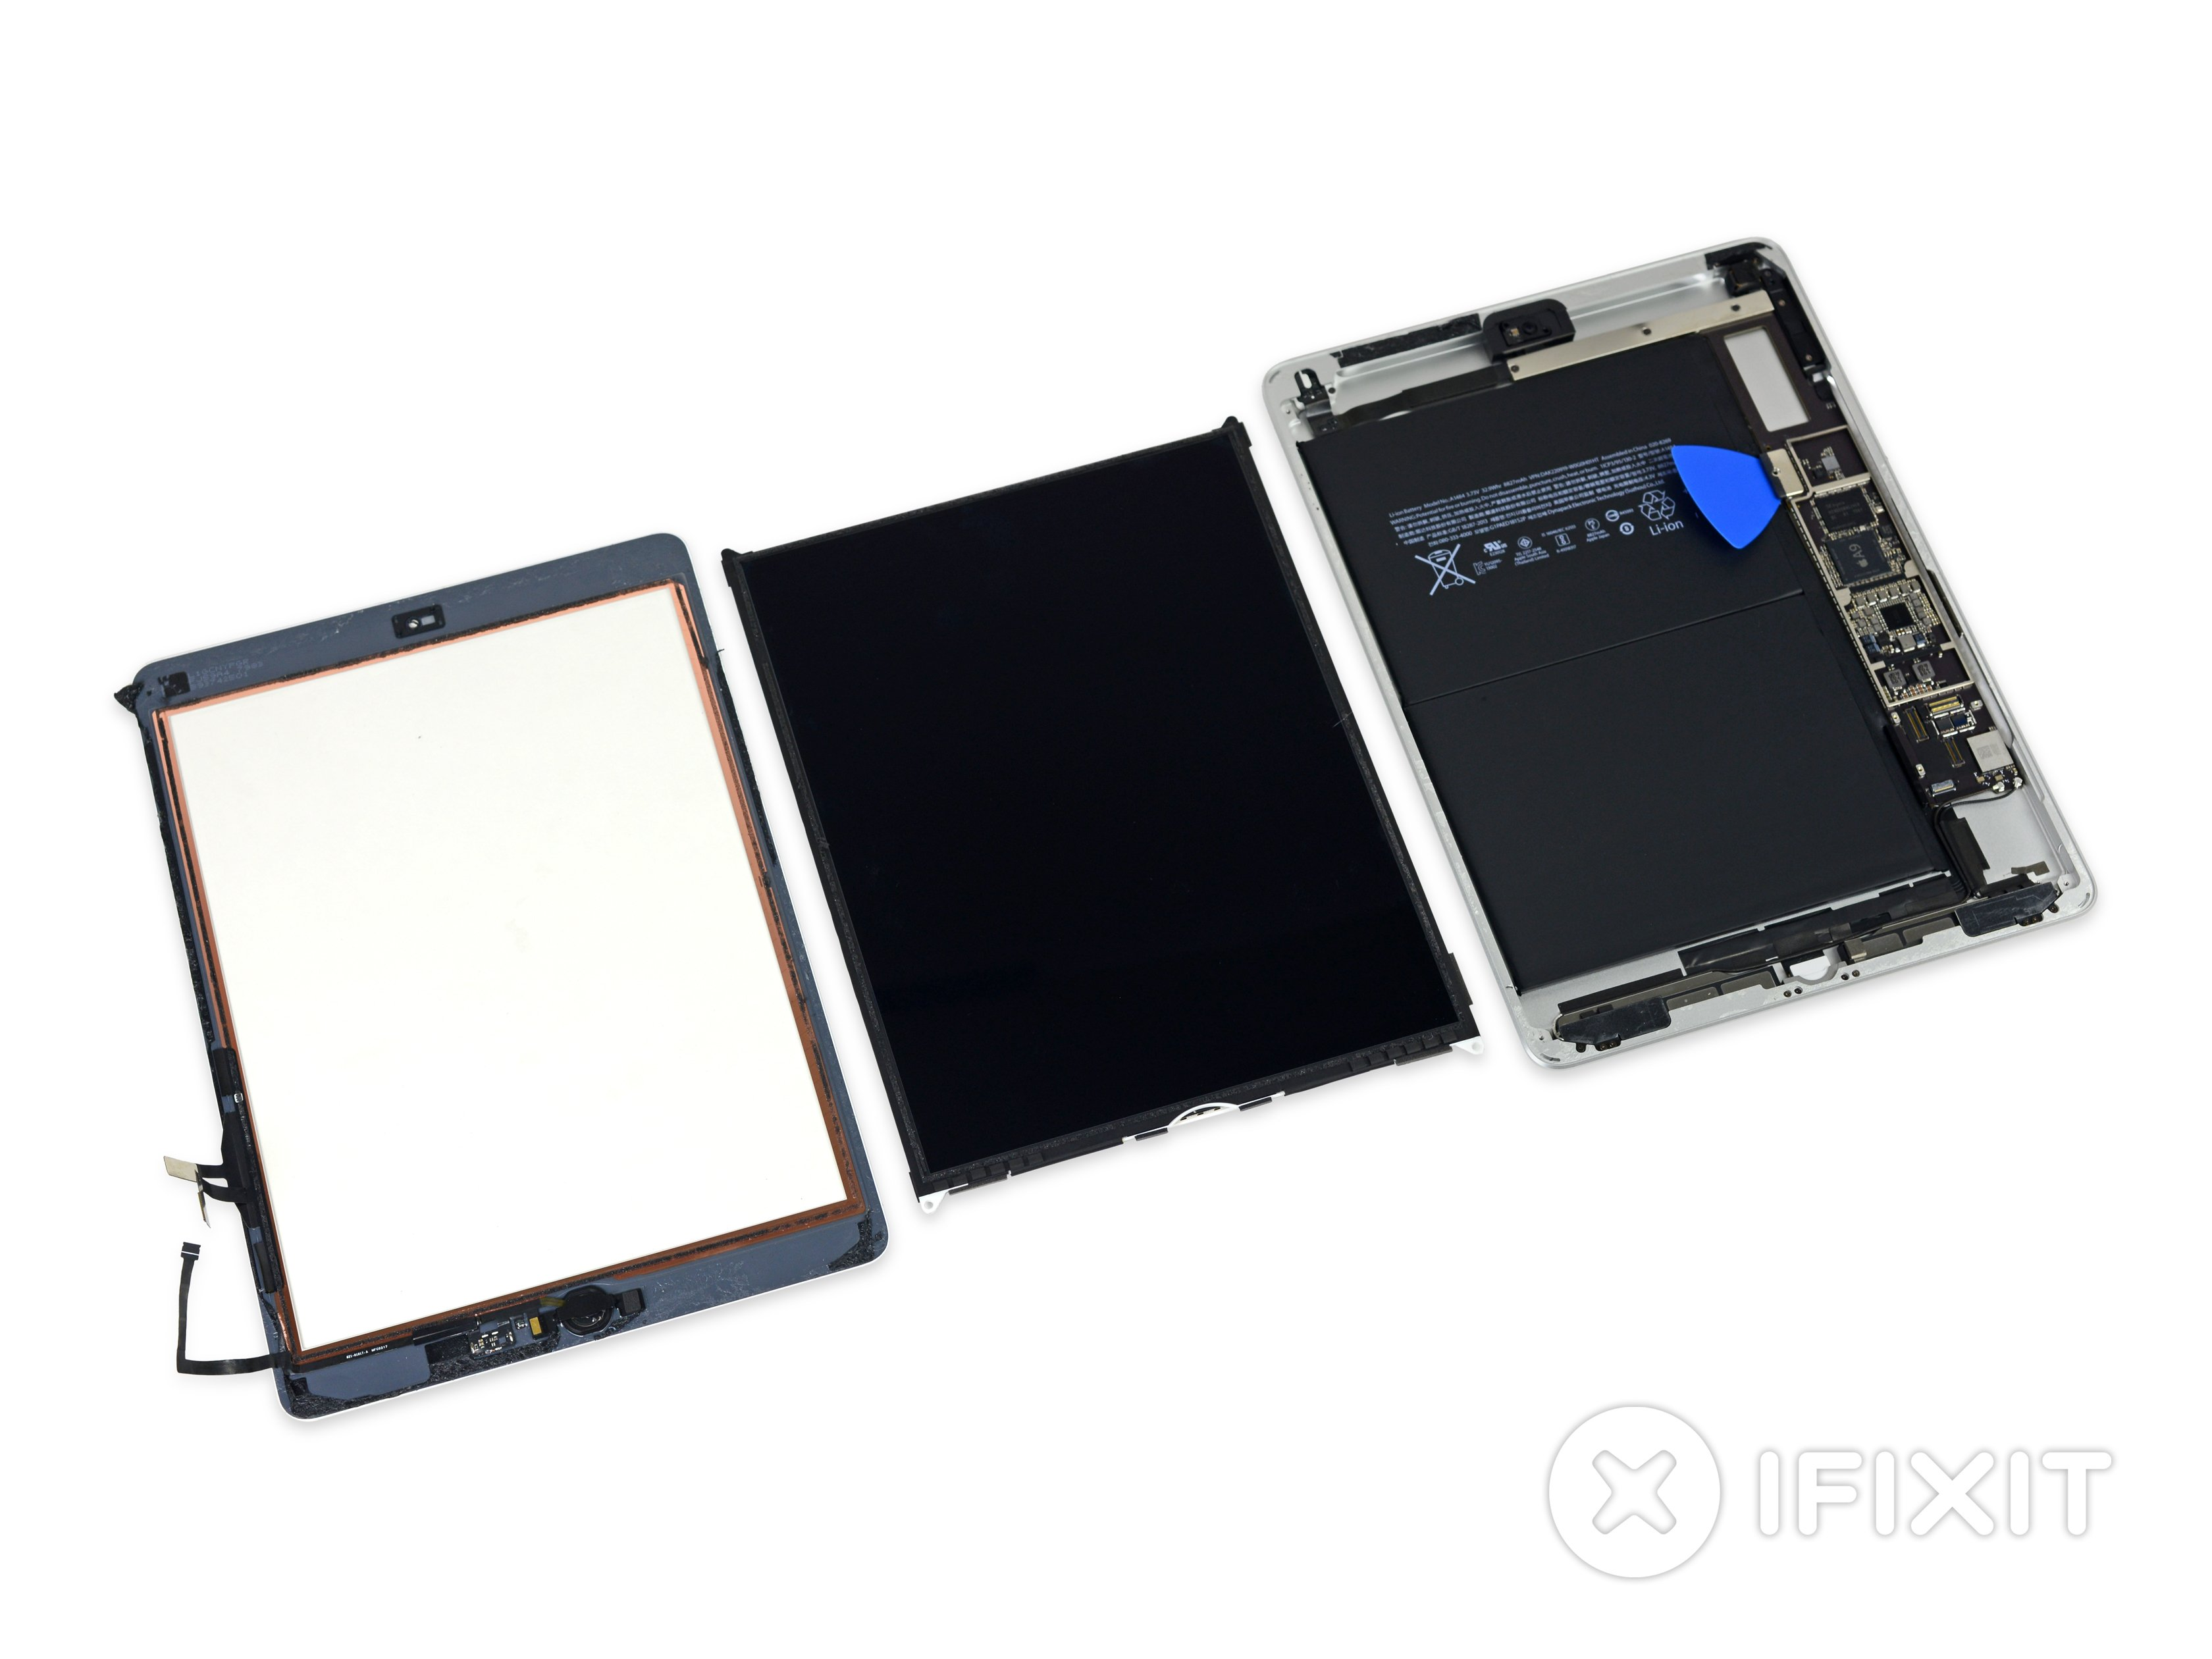 iPad 5 Teardown